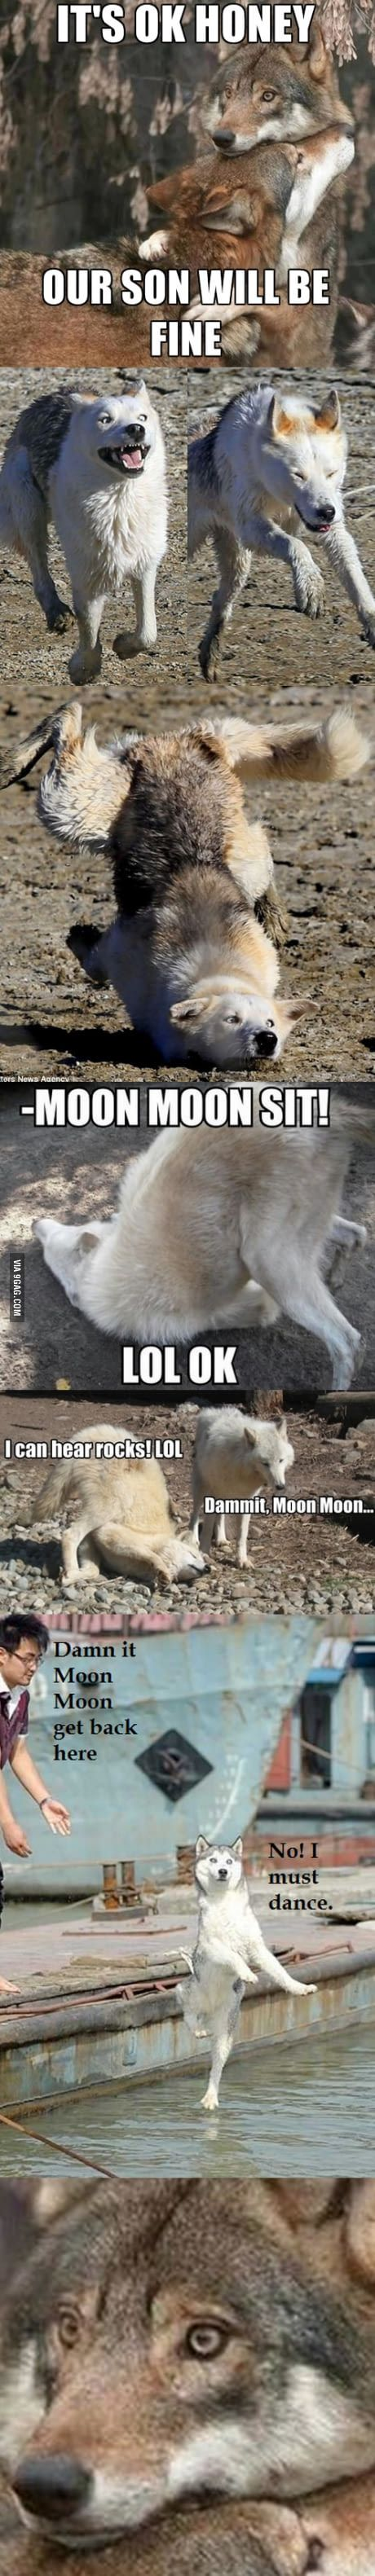 Dammit Moon Moon!